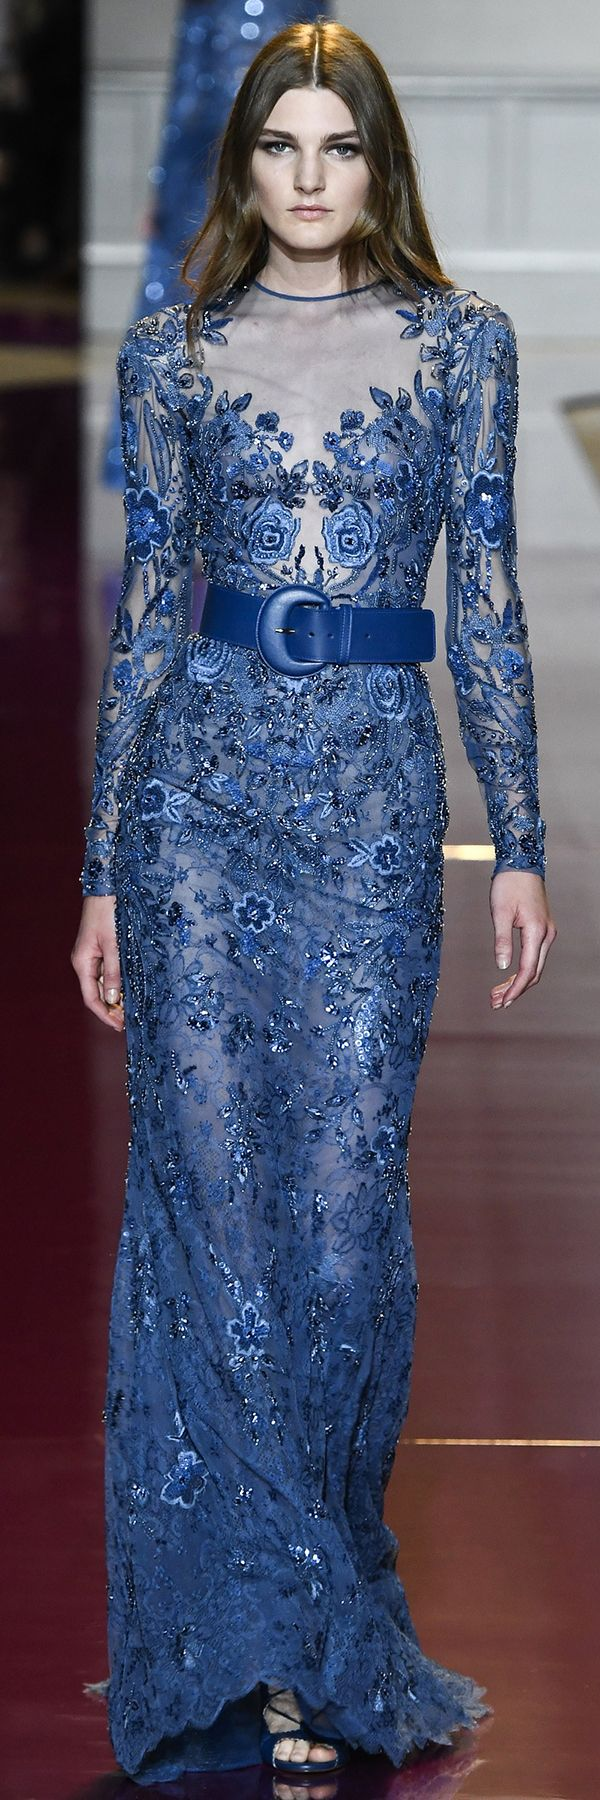 Zuhair Murad Fall 2016 Couture Collection